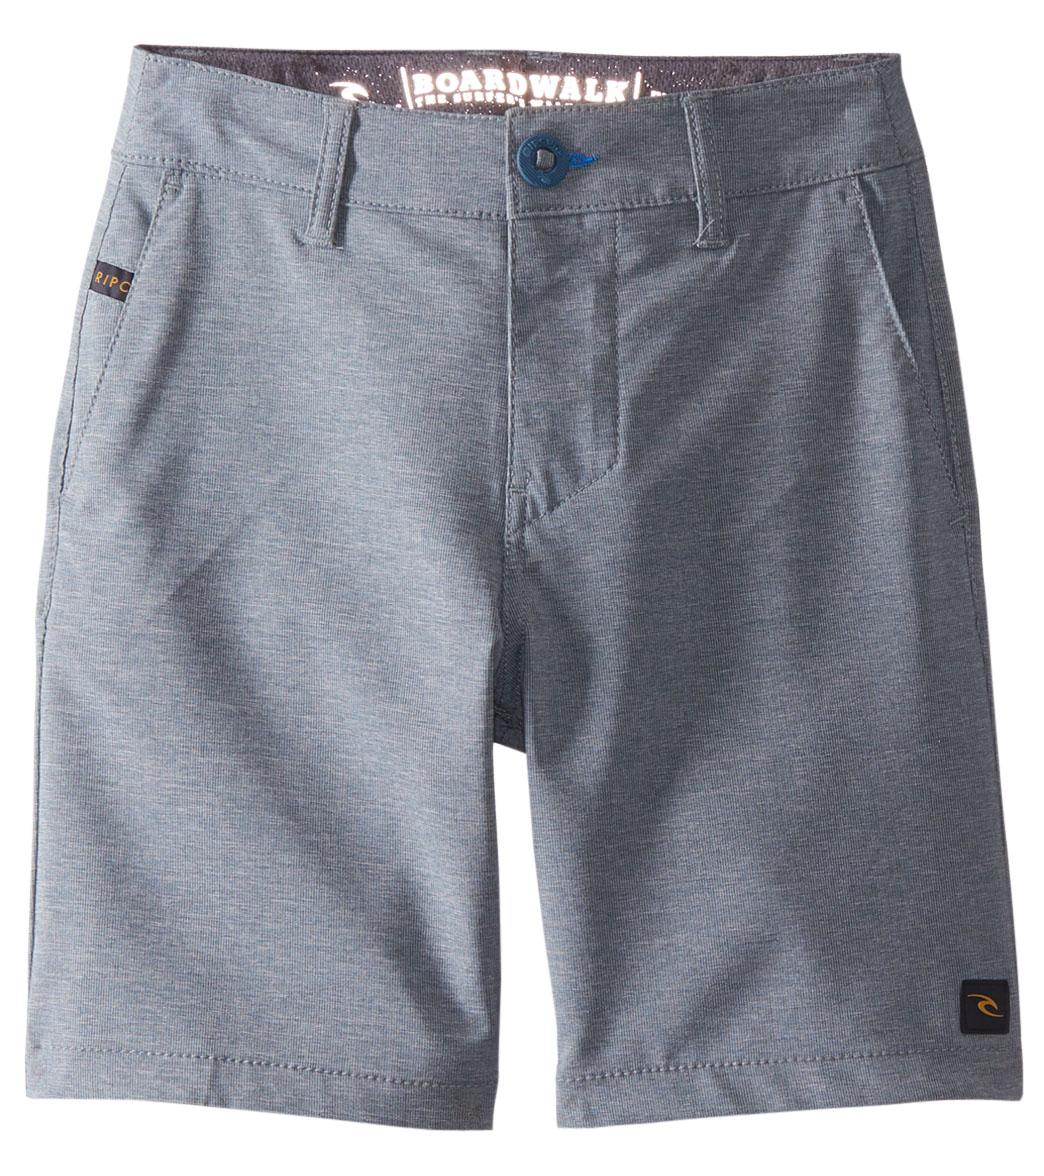 7f664896eebed Rip Curl Boys' Mirage Phase Boardwalk Short (Big Kid) at SwimOutlet.com -  Free Shipping